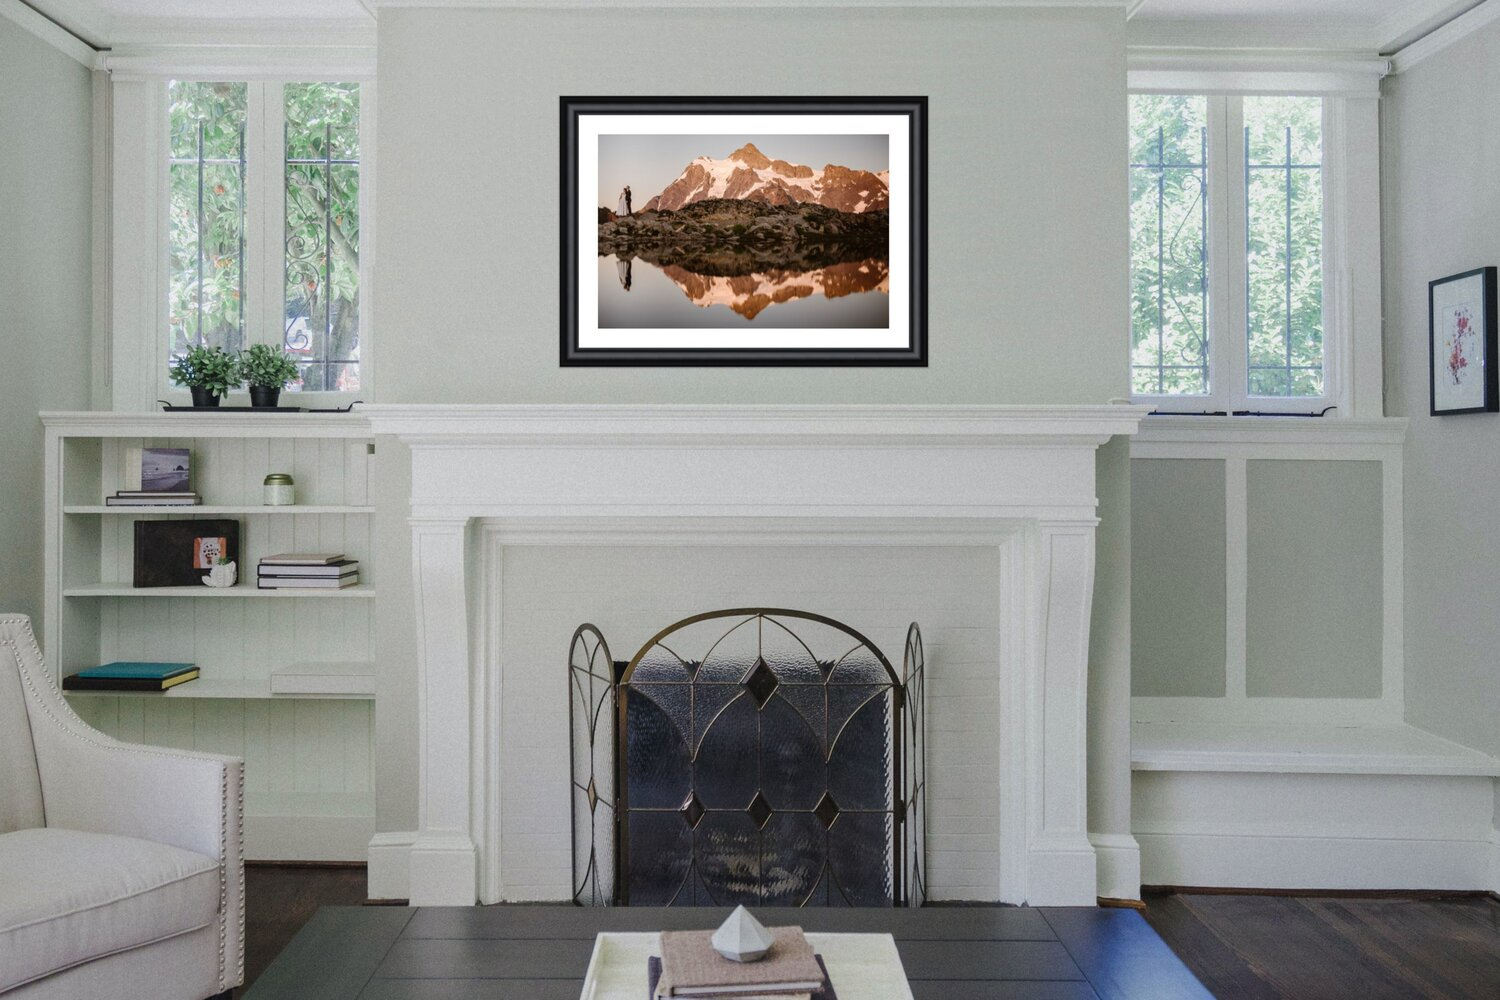 A wedding photo on a mantel display hanging above a fireplace.